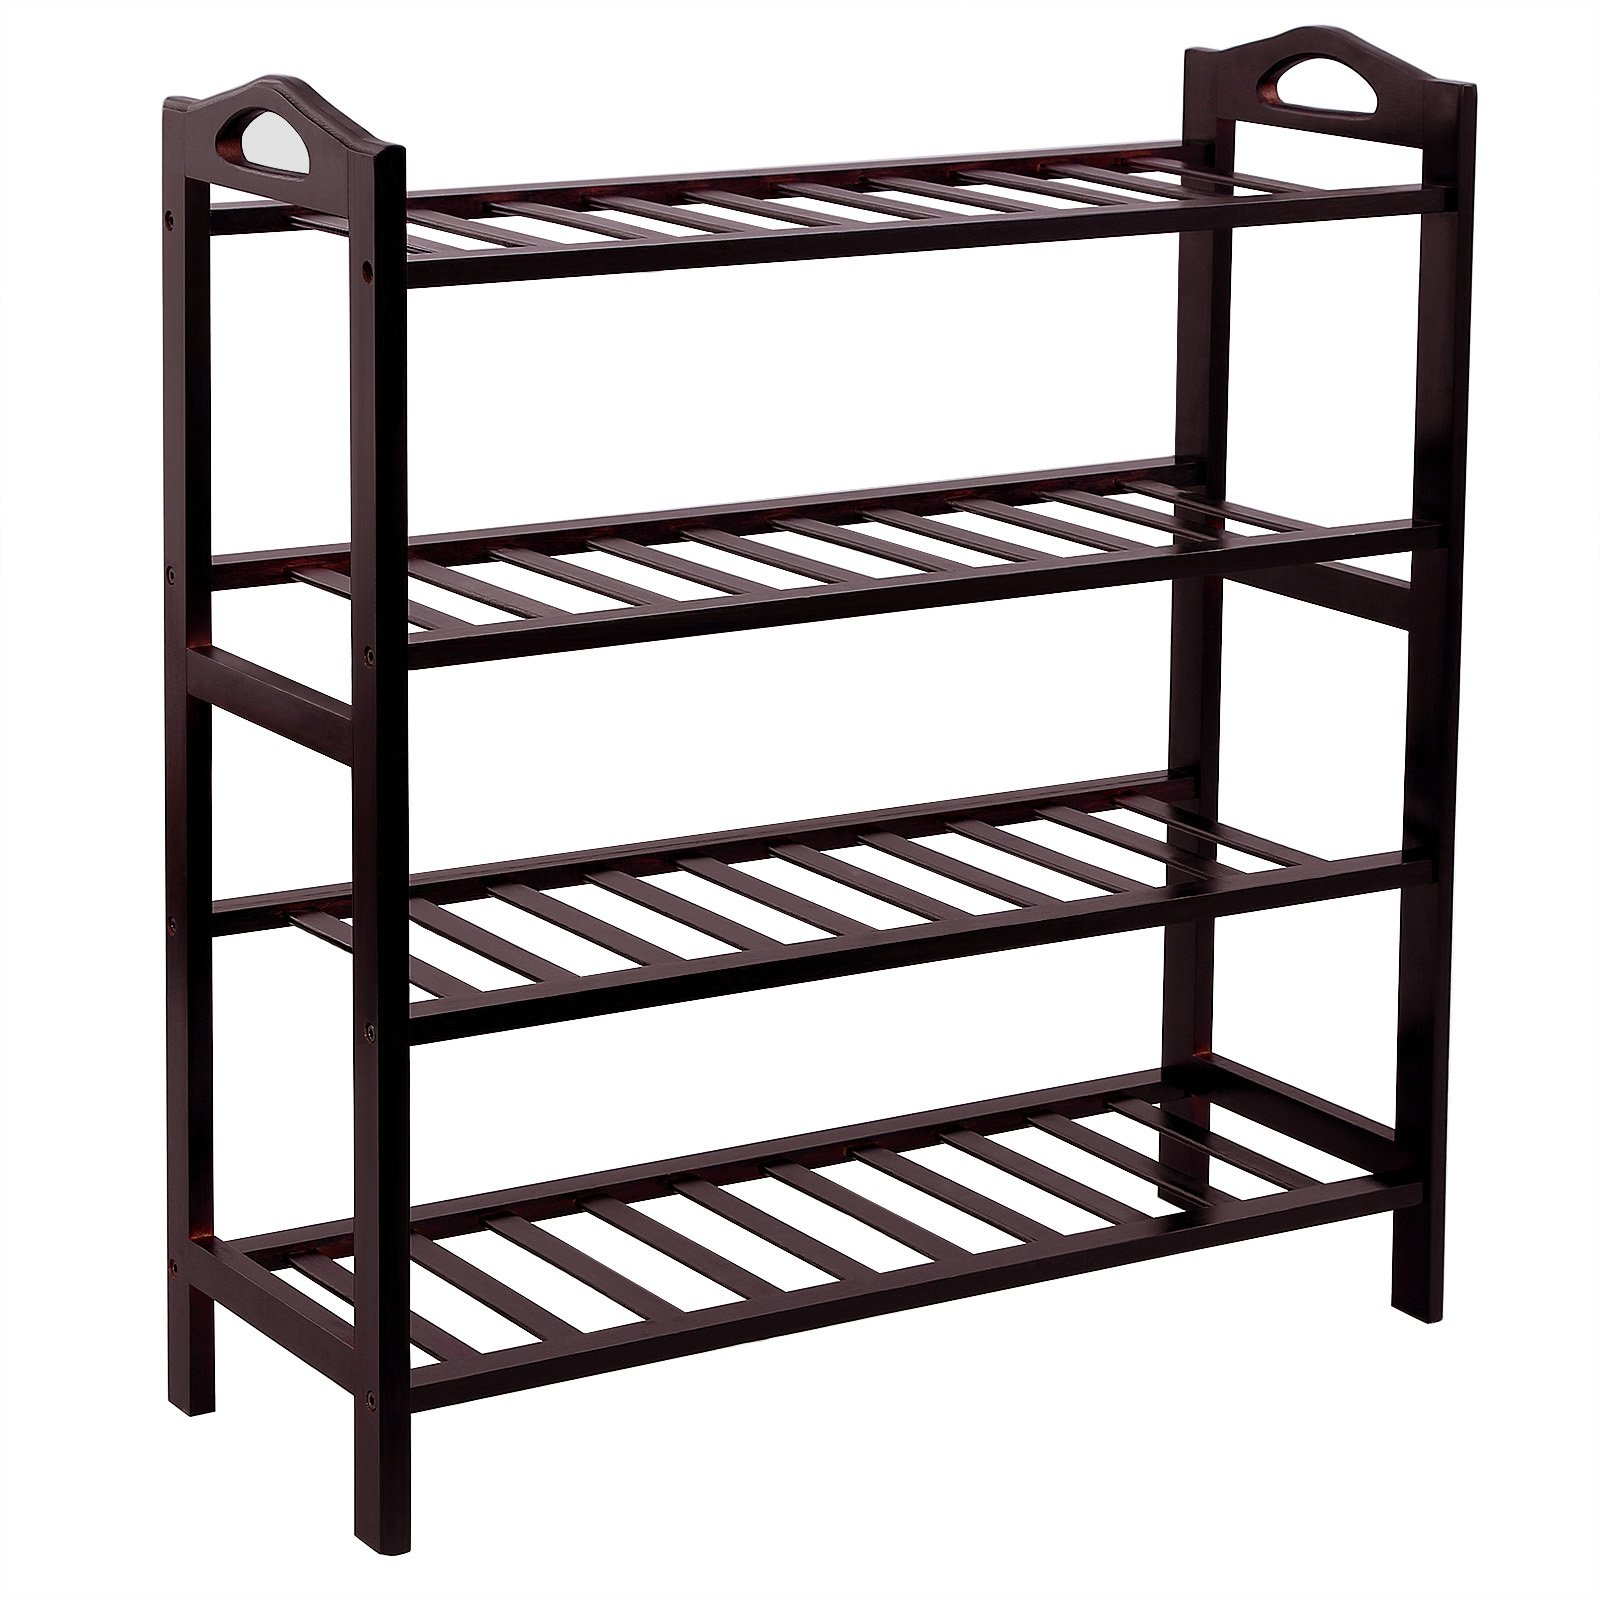 SONGMICS 100% Bamboo 4-Tier Shoe Rack 30 Inch Wide Entryway Shoe Shelf Storage Organizer, 26.6'' L x 10.4'' W x 29.4'' H,Holds Up to 16 Pairs,Ideal for Hallway Bathroom Garden Brown ULBS94Z by SONGMICS (Image #1)